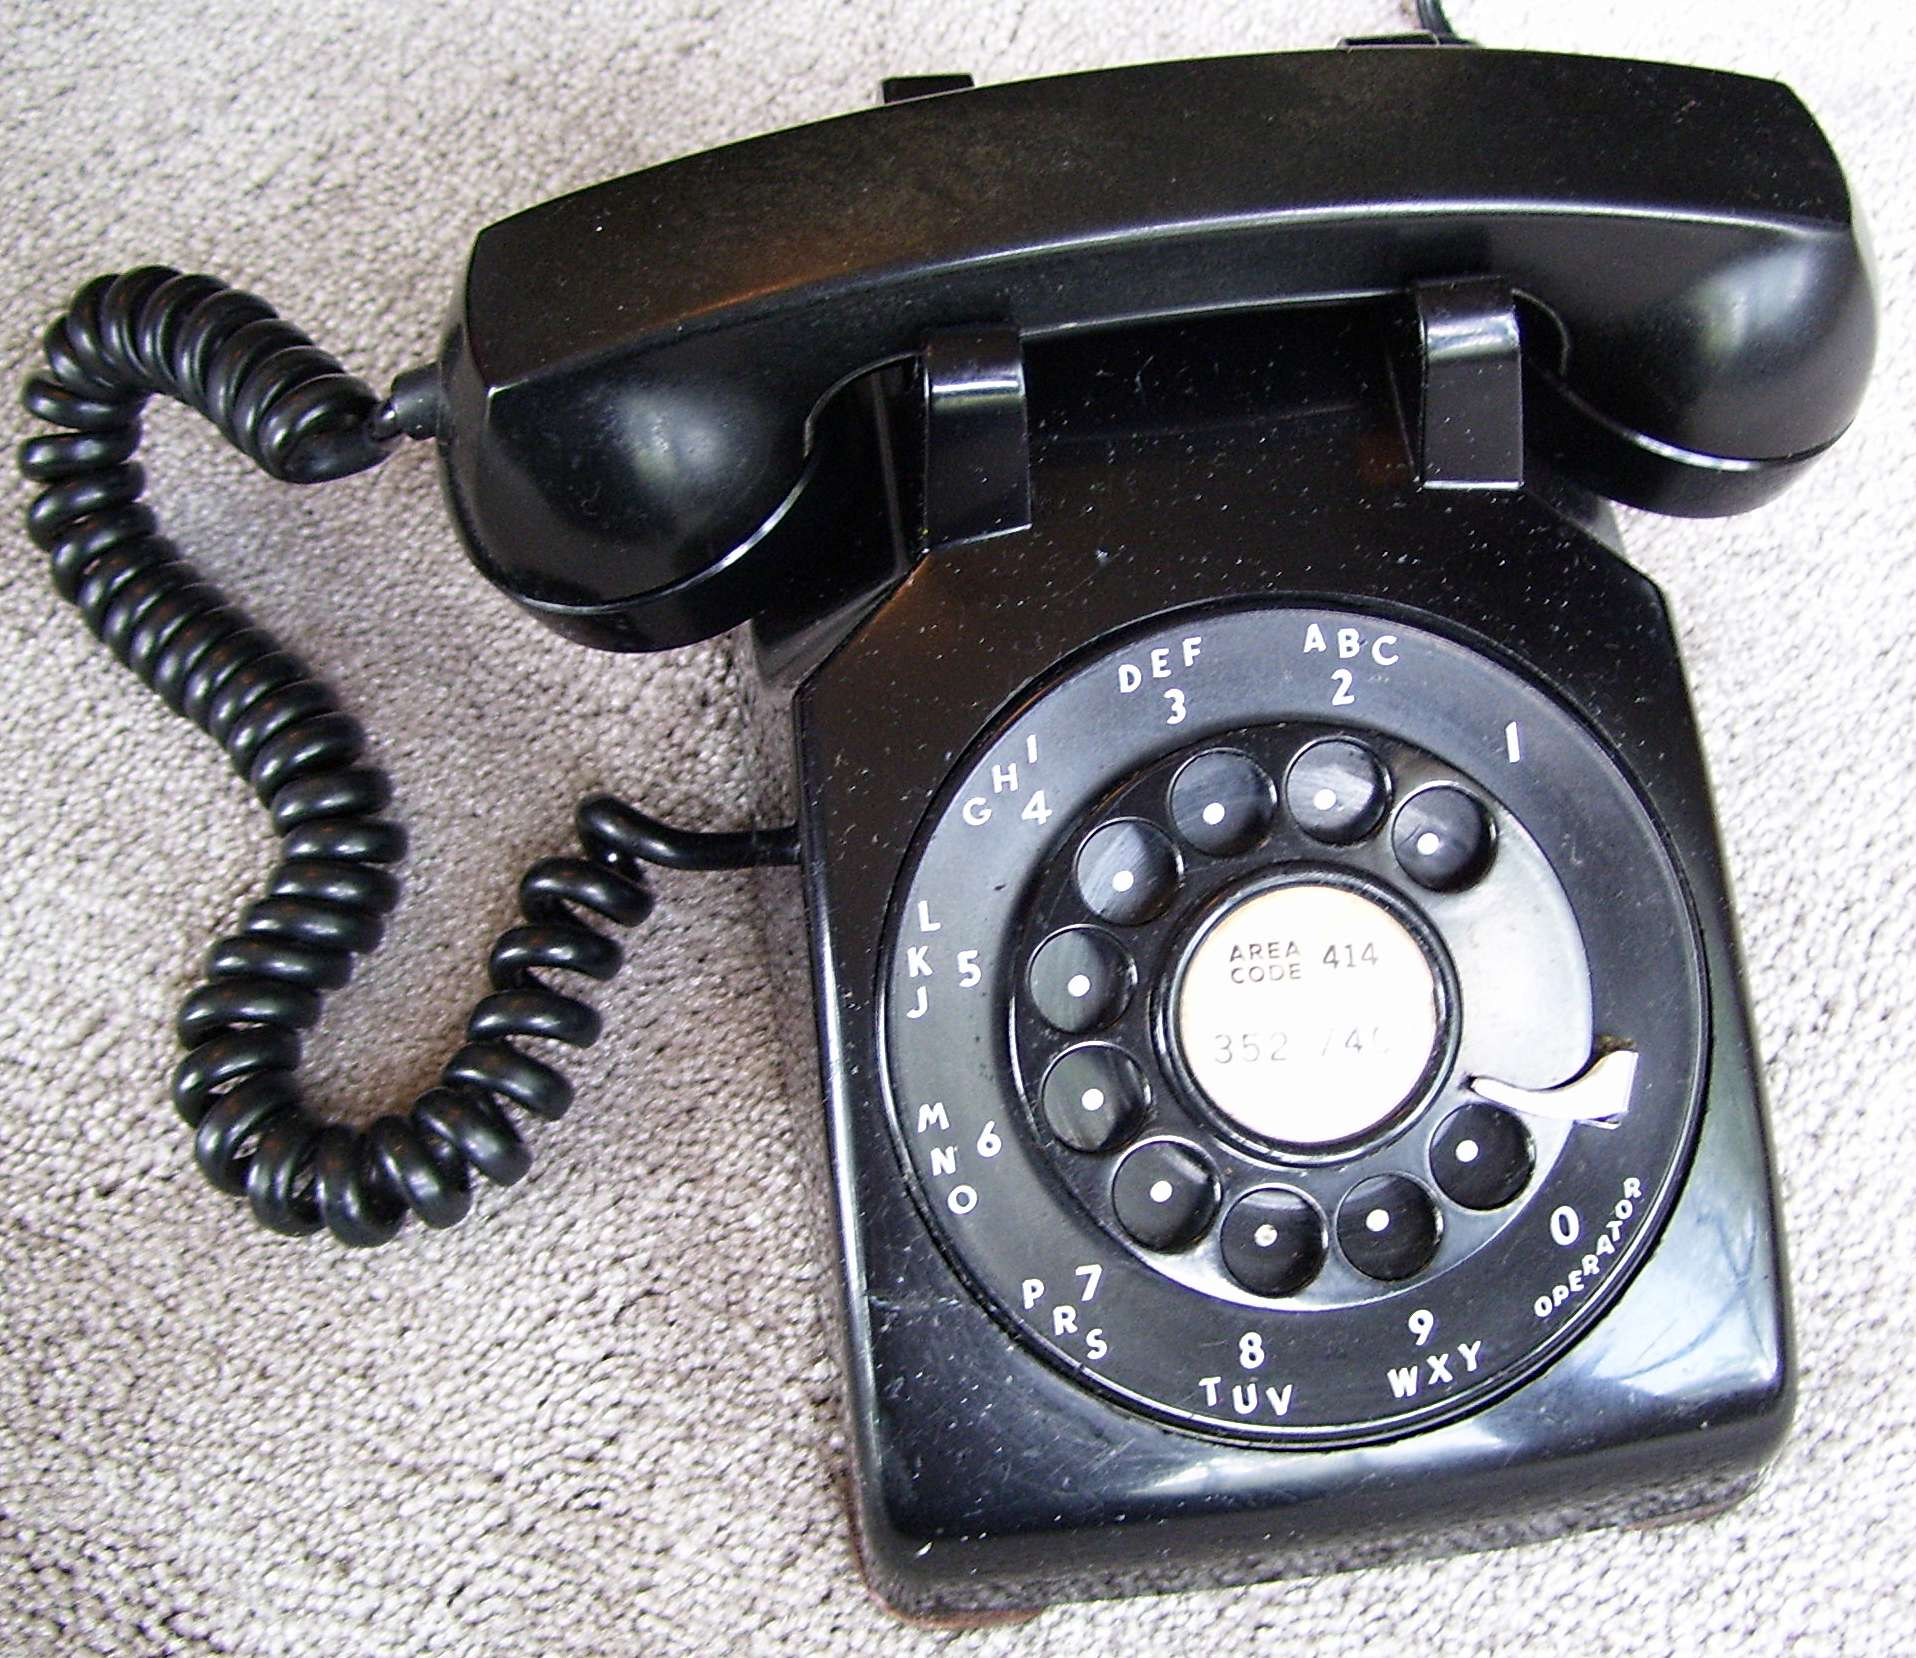 Model 500 telephone - Wikipedia on